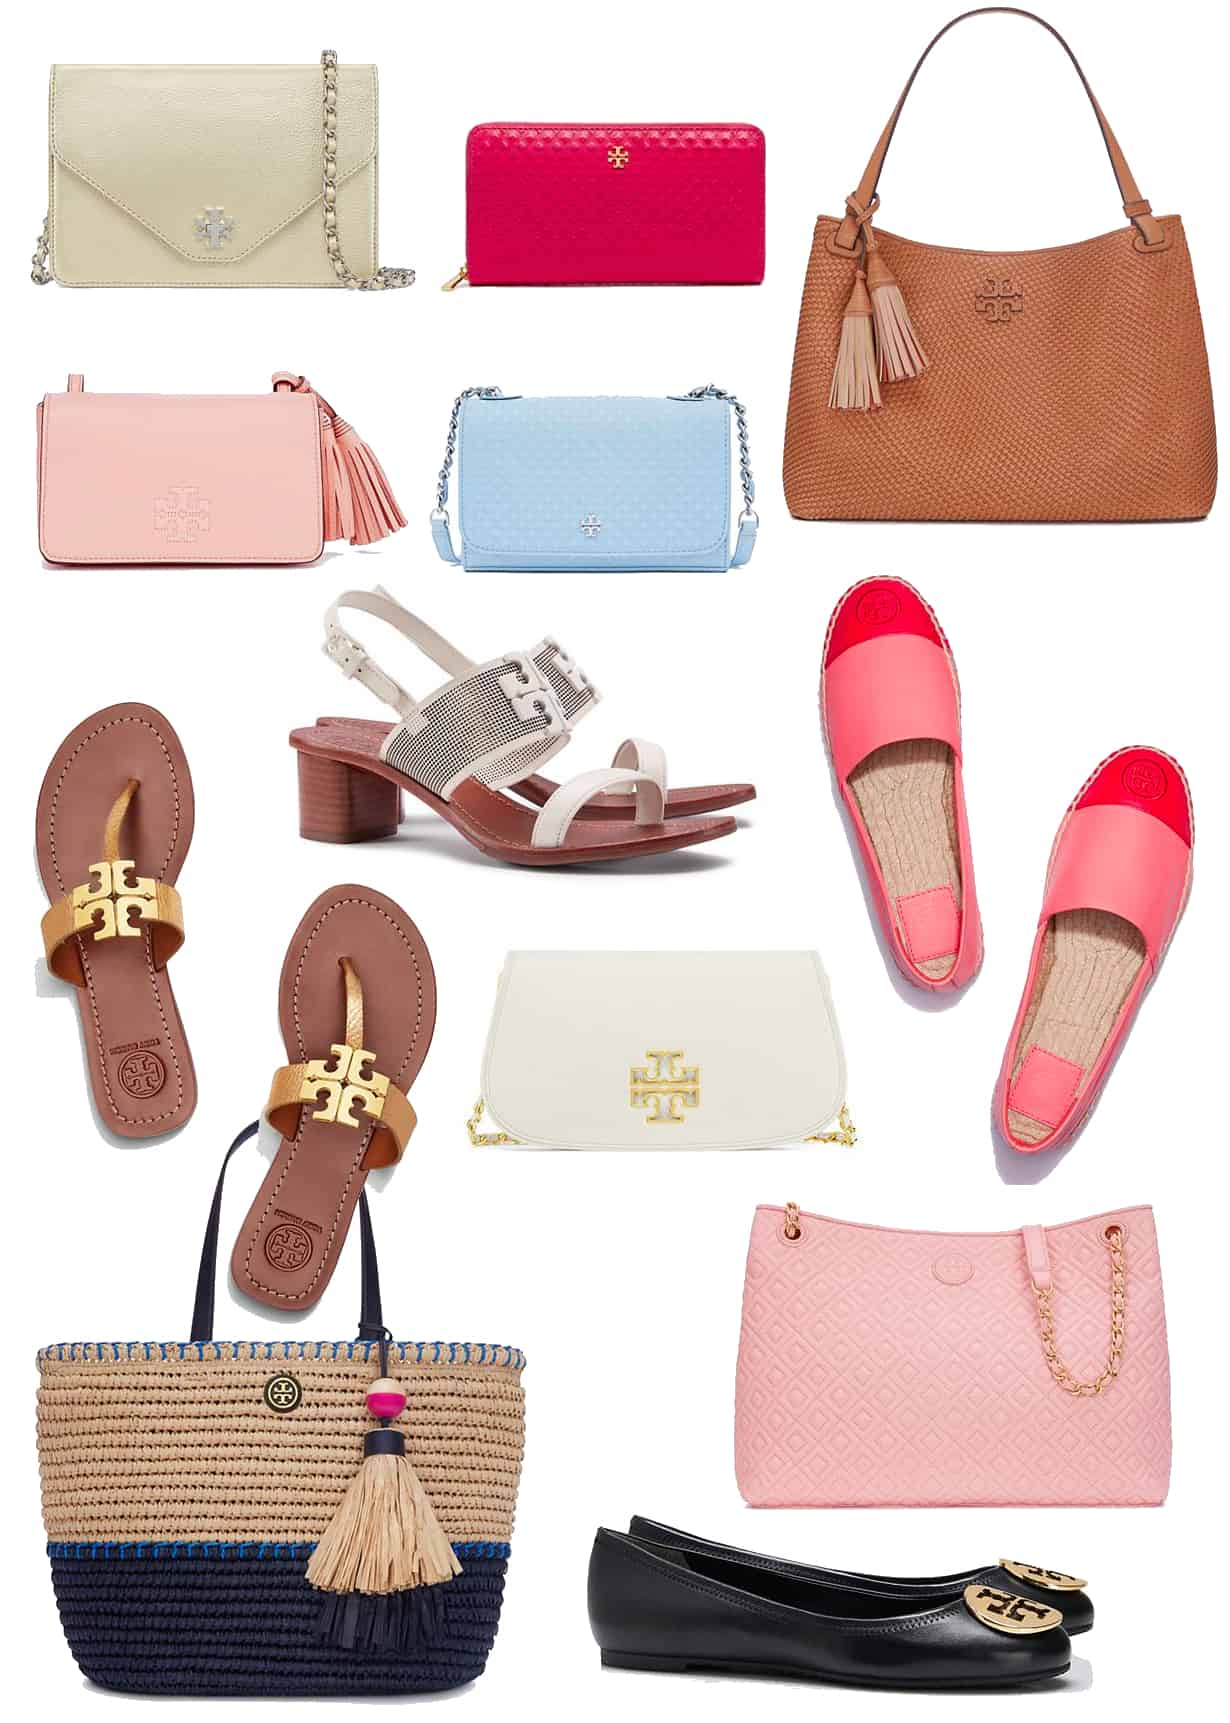 Tory Burch Spring Event Sale April 2016